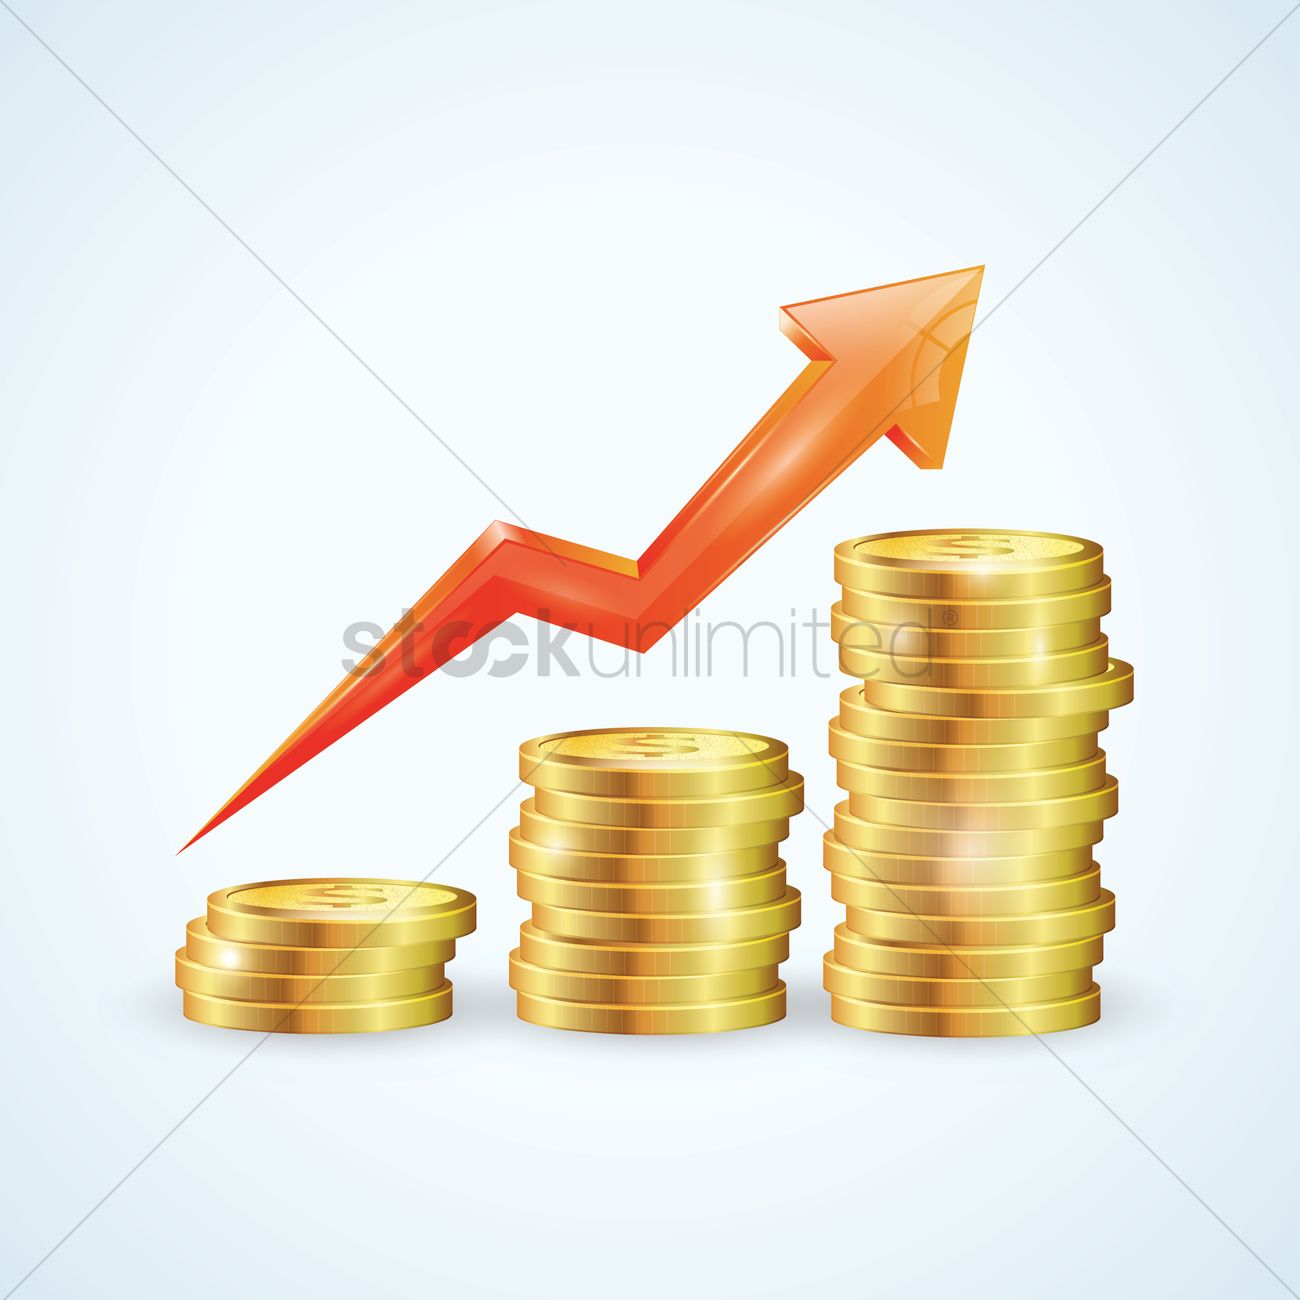 Stack of gold coins with arrow Vector Image.